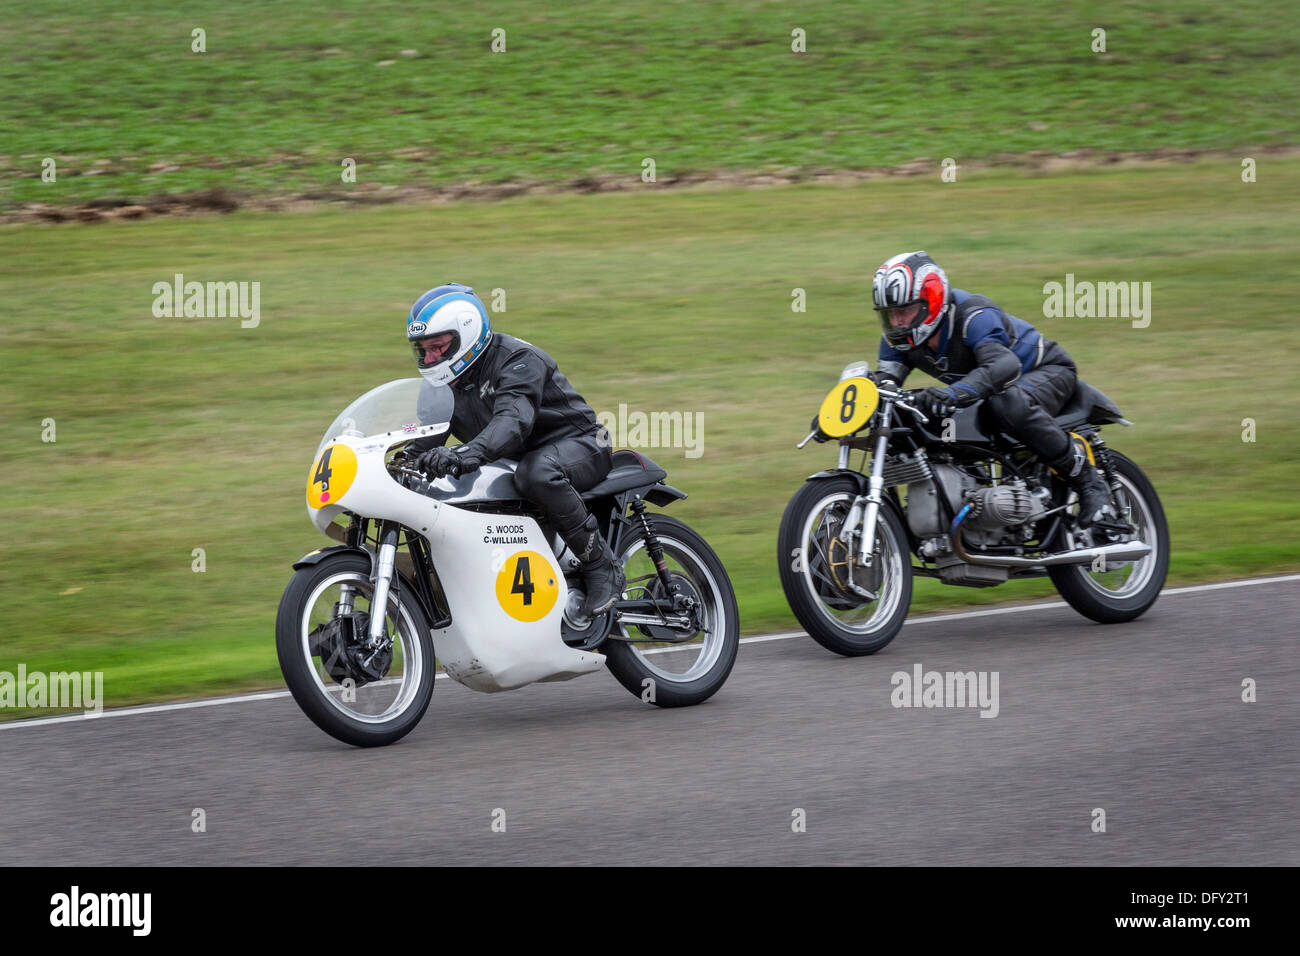 Norton 500 Stock Photos Images Alamy 1966 Atlas Wiring Diagram Stan Woods On A 1962 Manx Leads Kazcor Bmw R50 2013 Goodwood